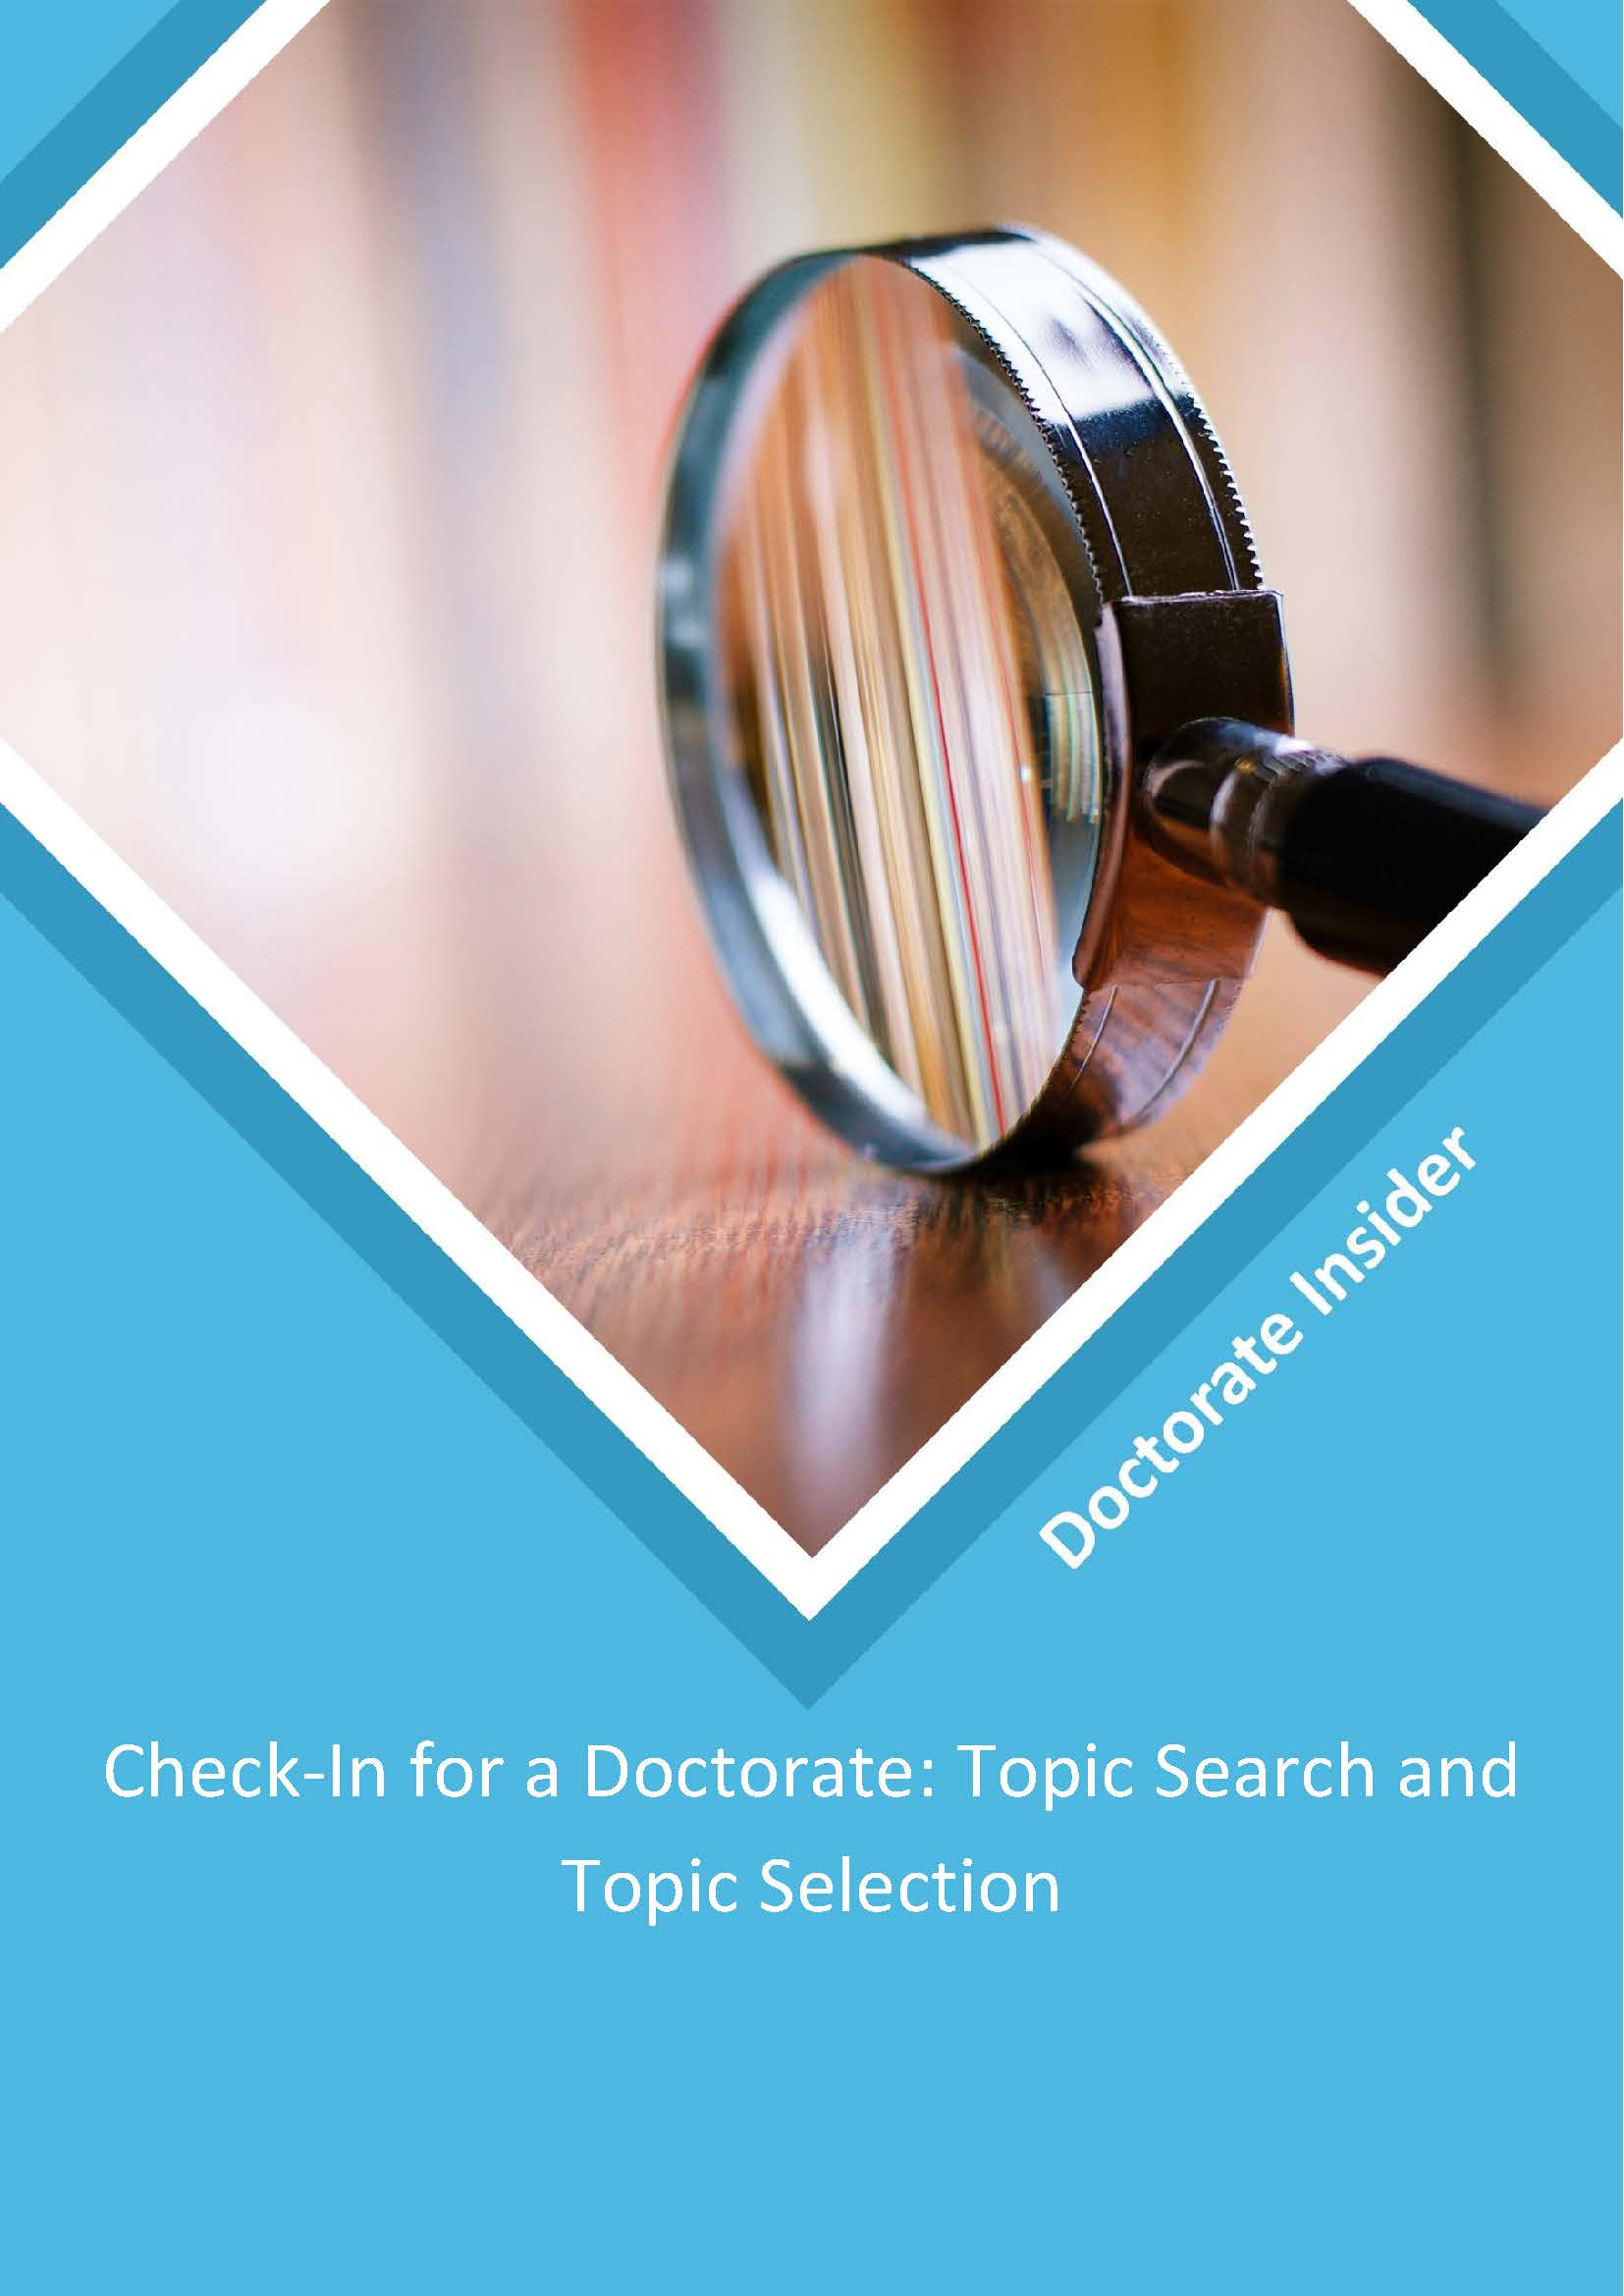 CHECK-IN FOR A DOCTORATE: TOPIC SEARCH AND TOPIC SELECTION